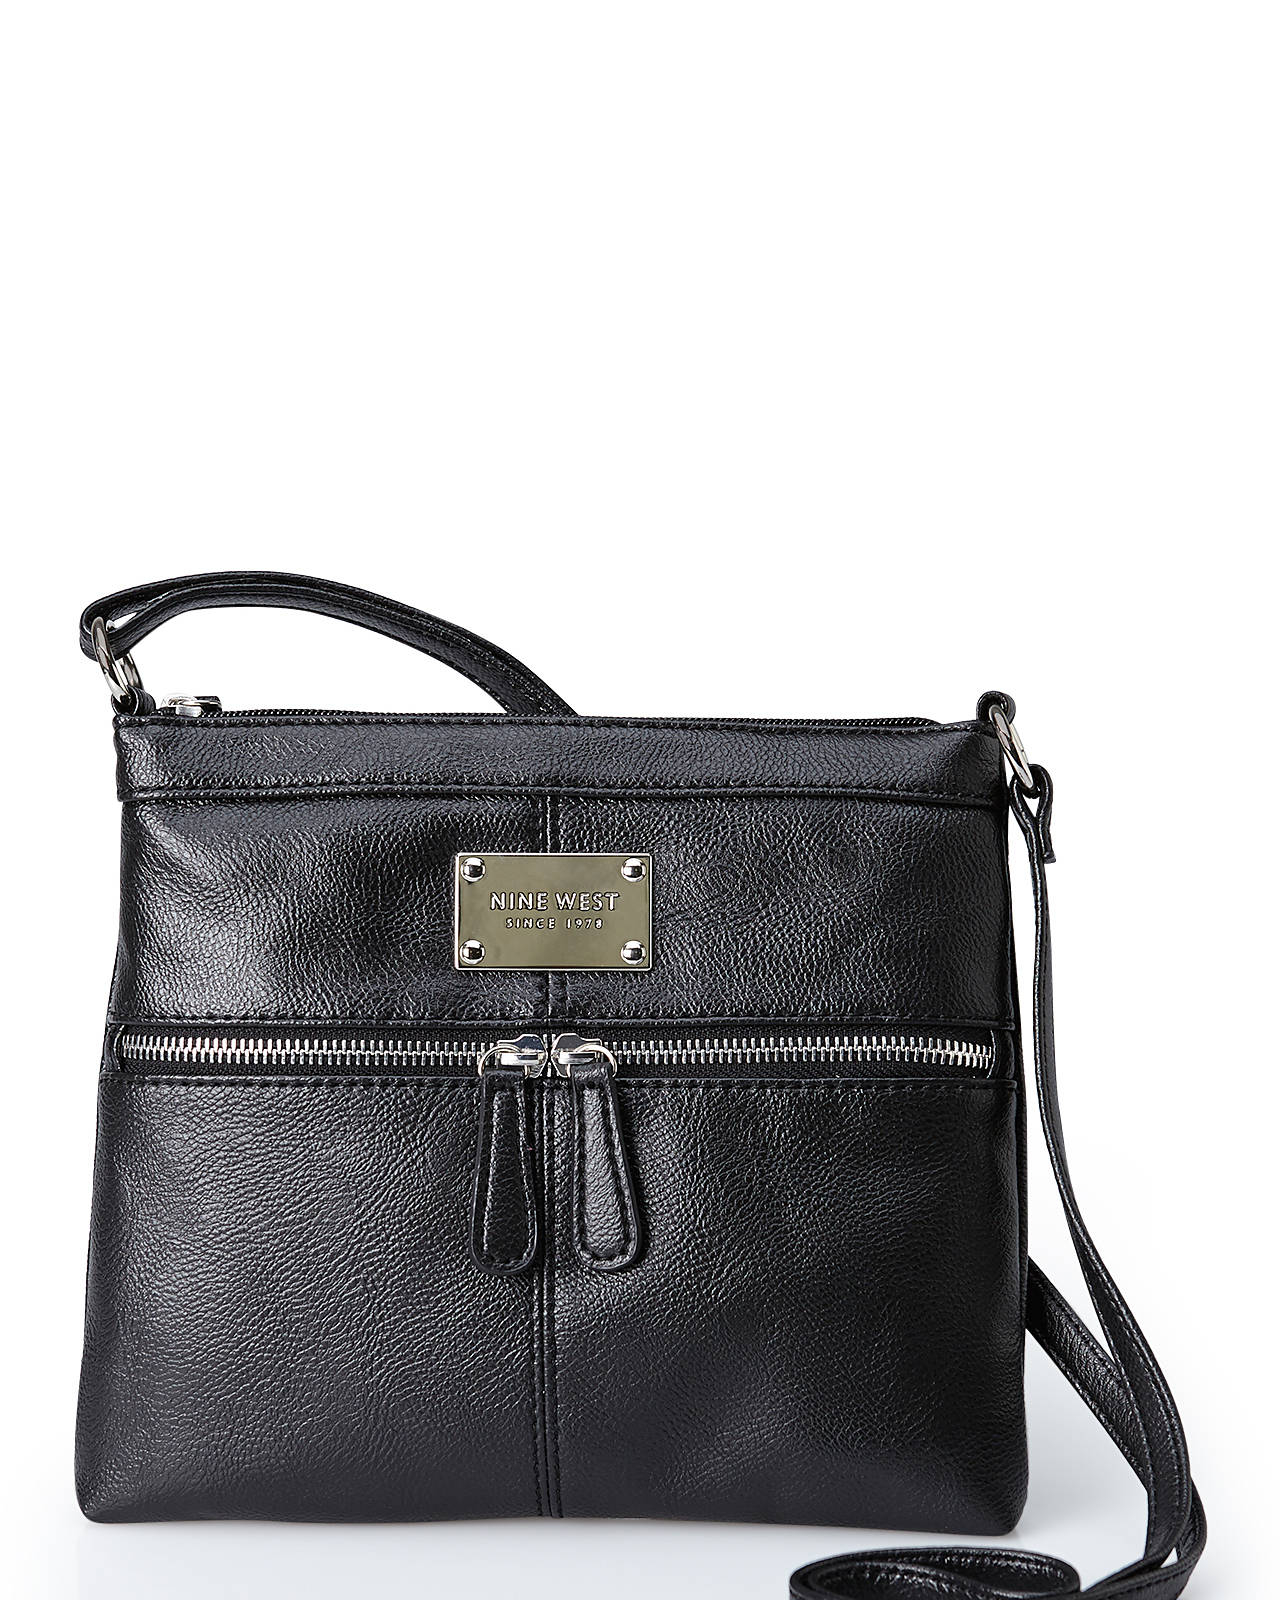 cb841a6cab09 Nine West Black Encino Crossbody Bag